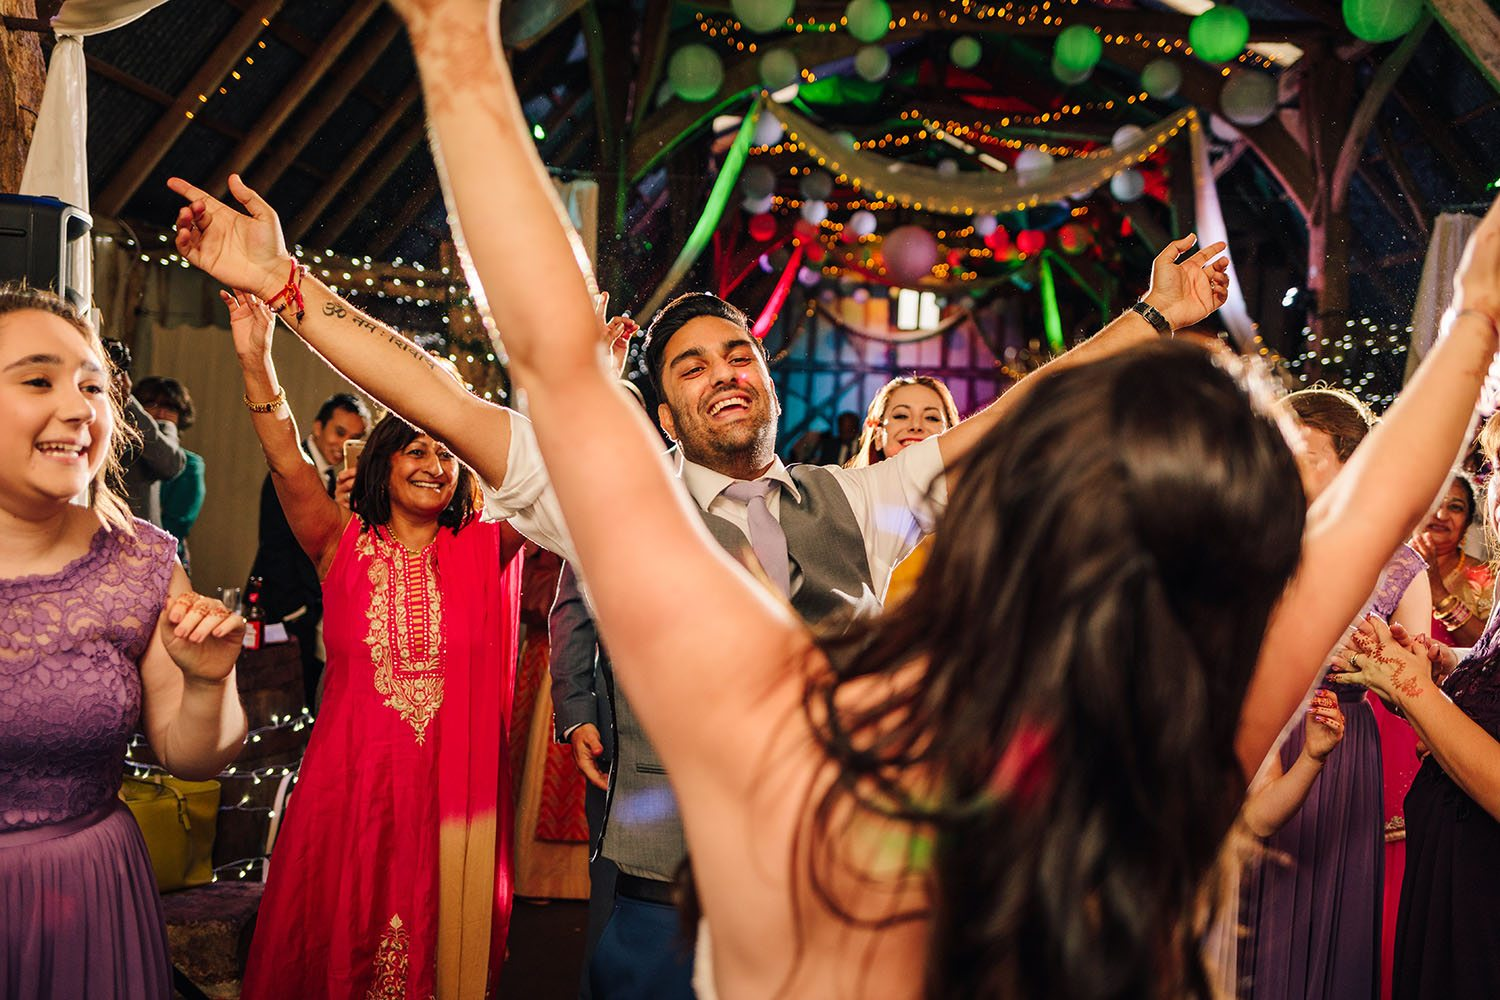 Hands in the air to first dance